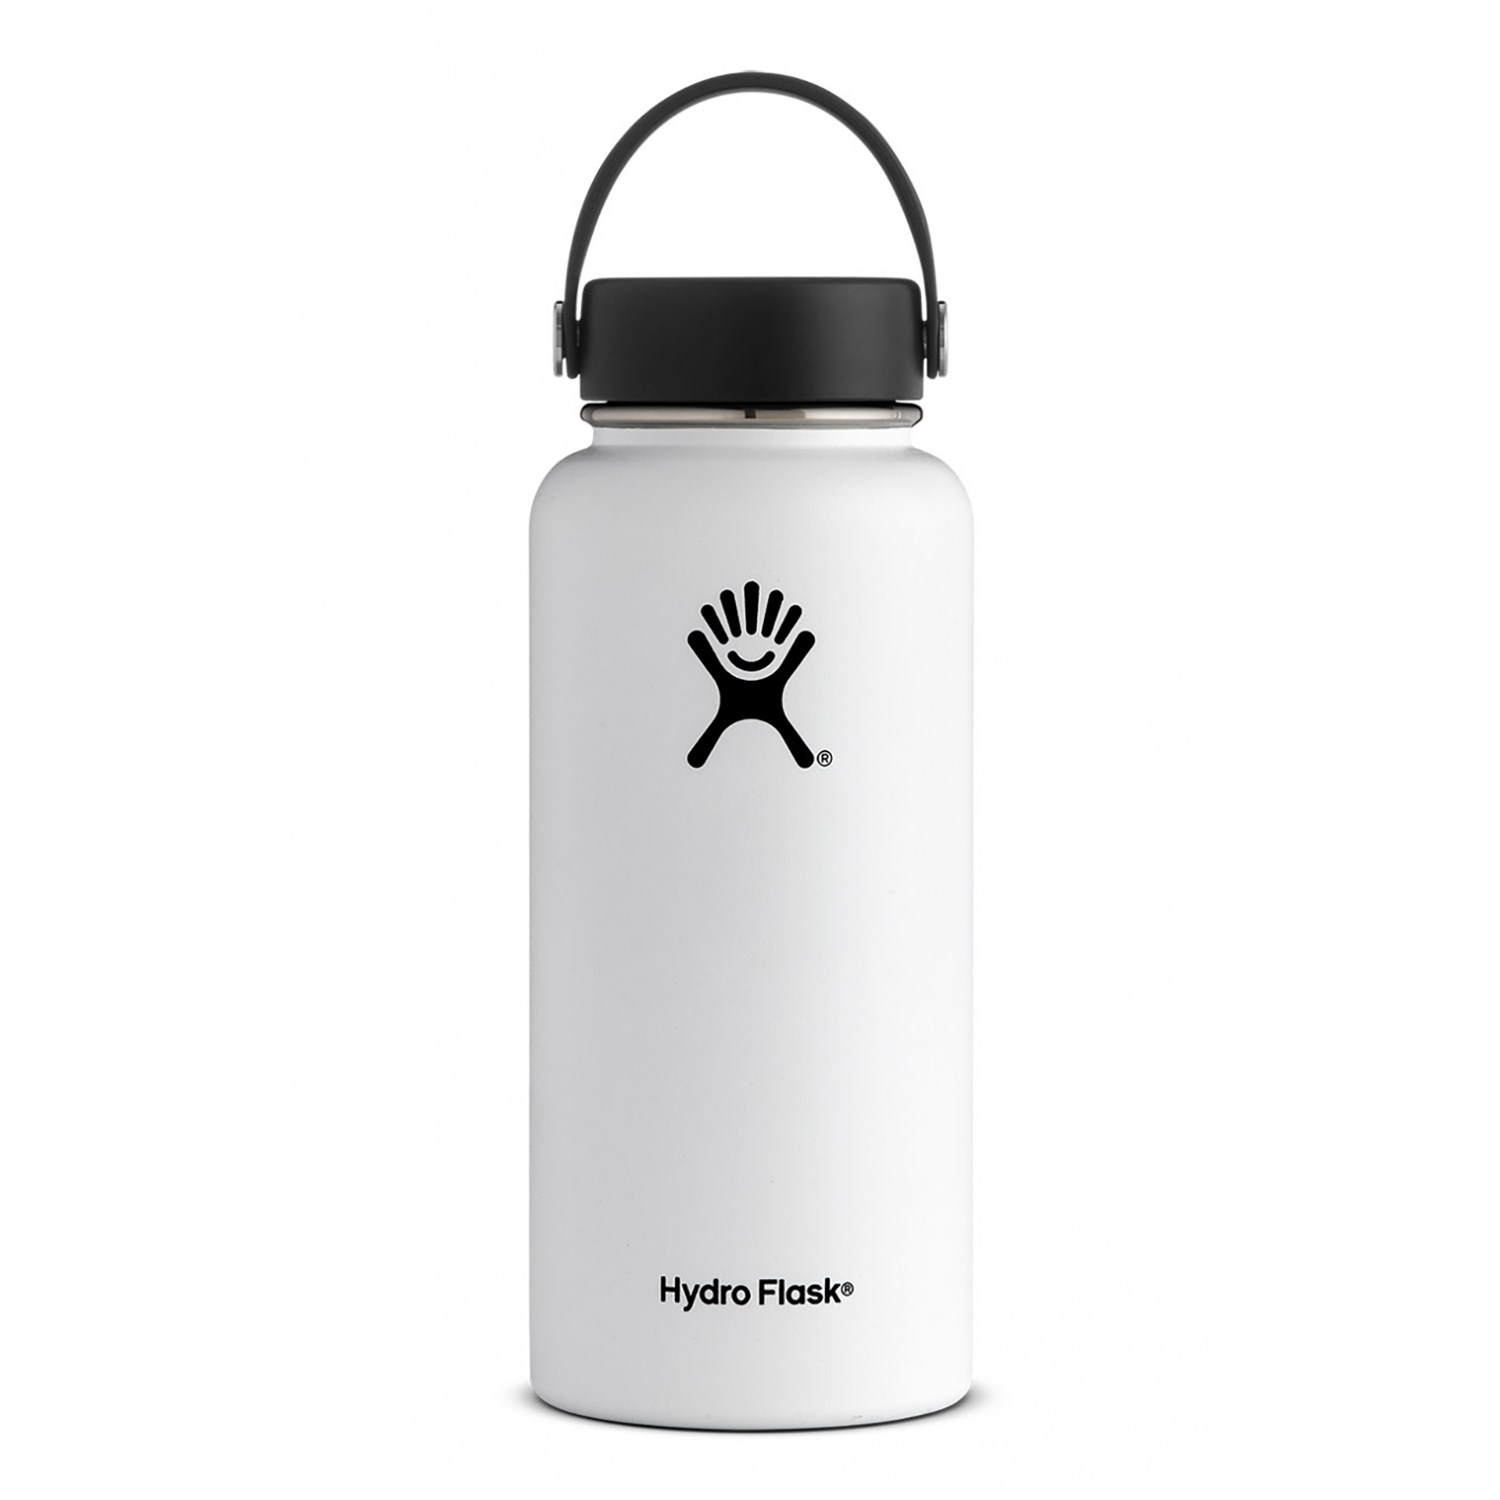 Image result for hydroflask water bottle